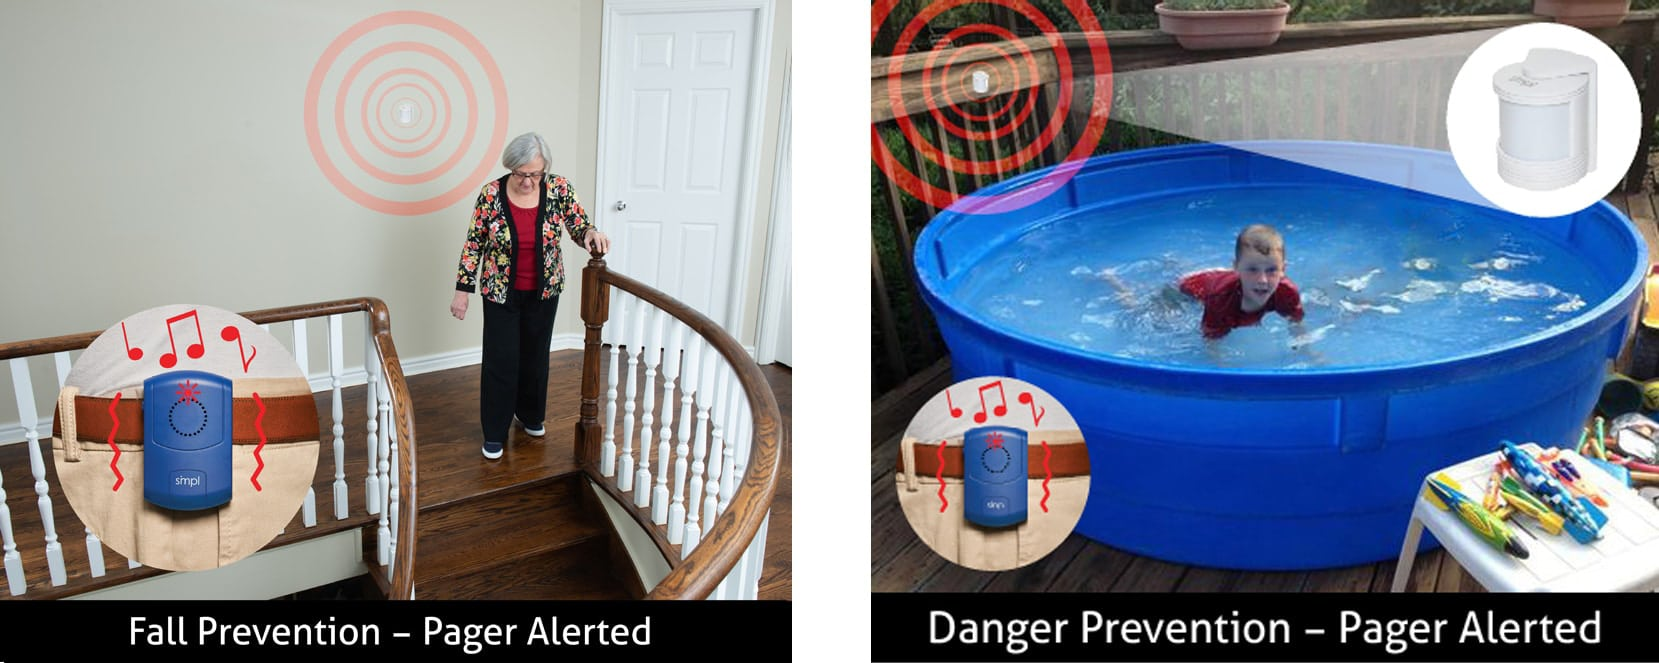 Fall Prevention - Danger Prevention